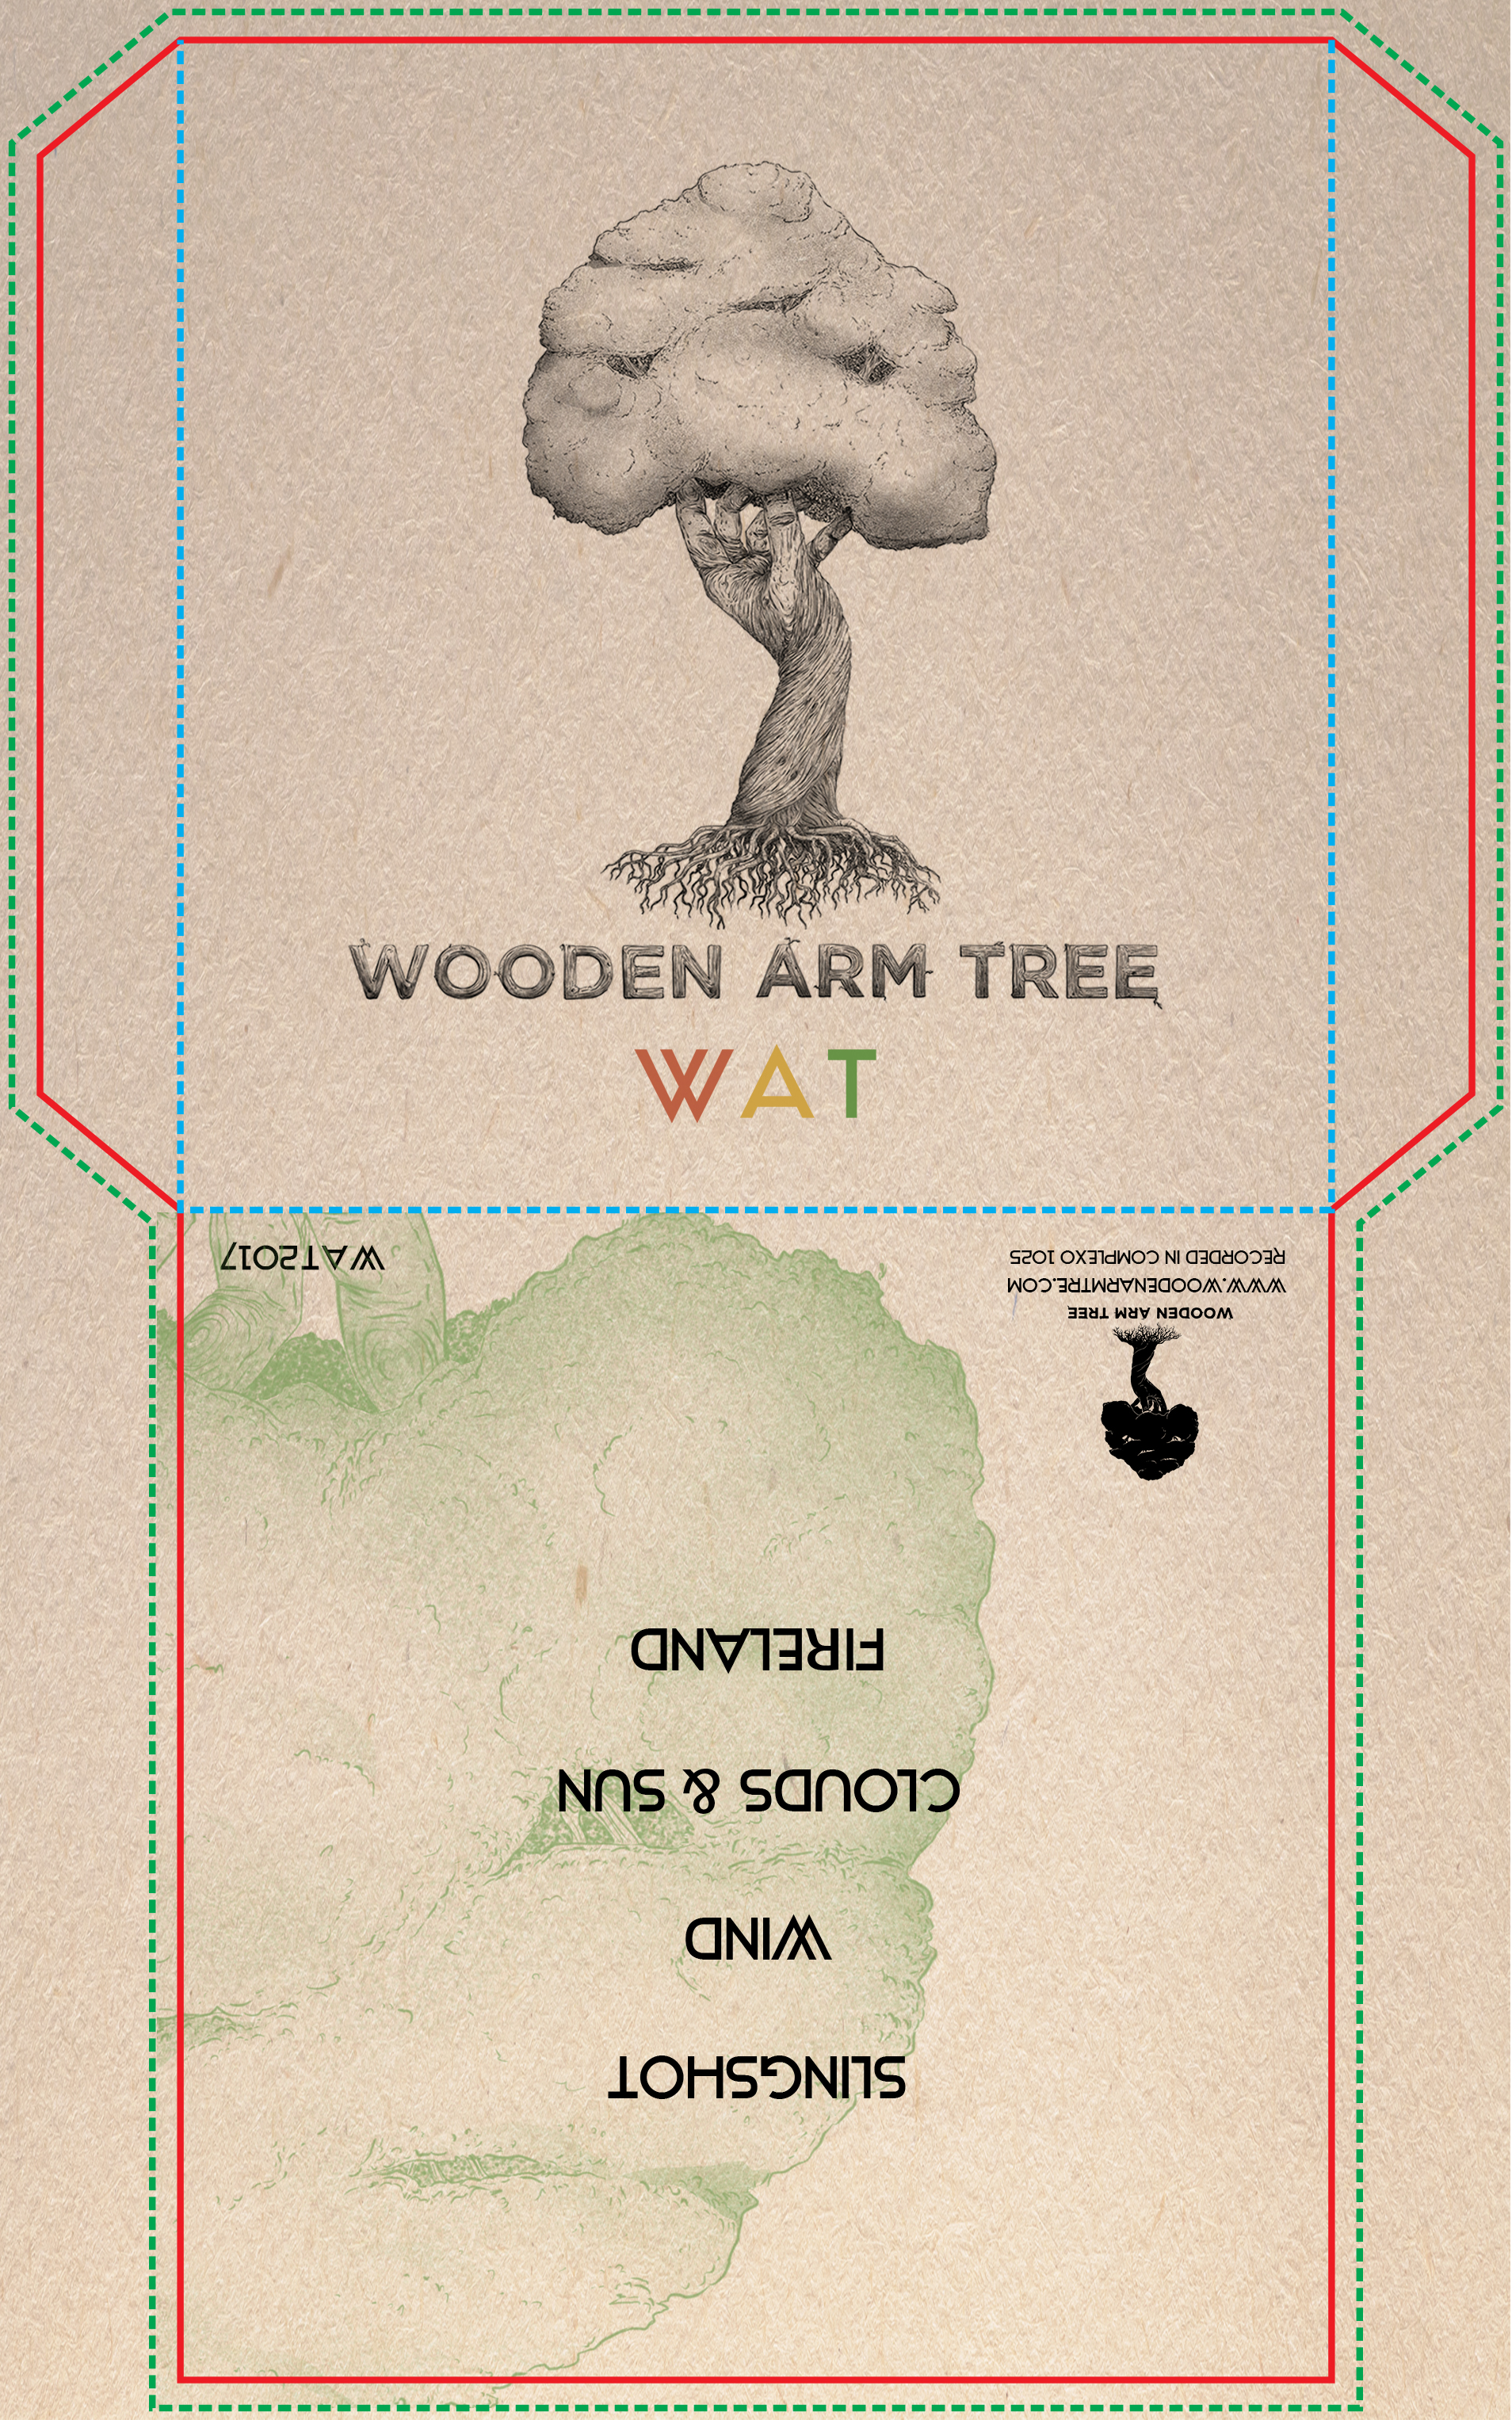 Wooden arm tree cover